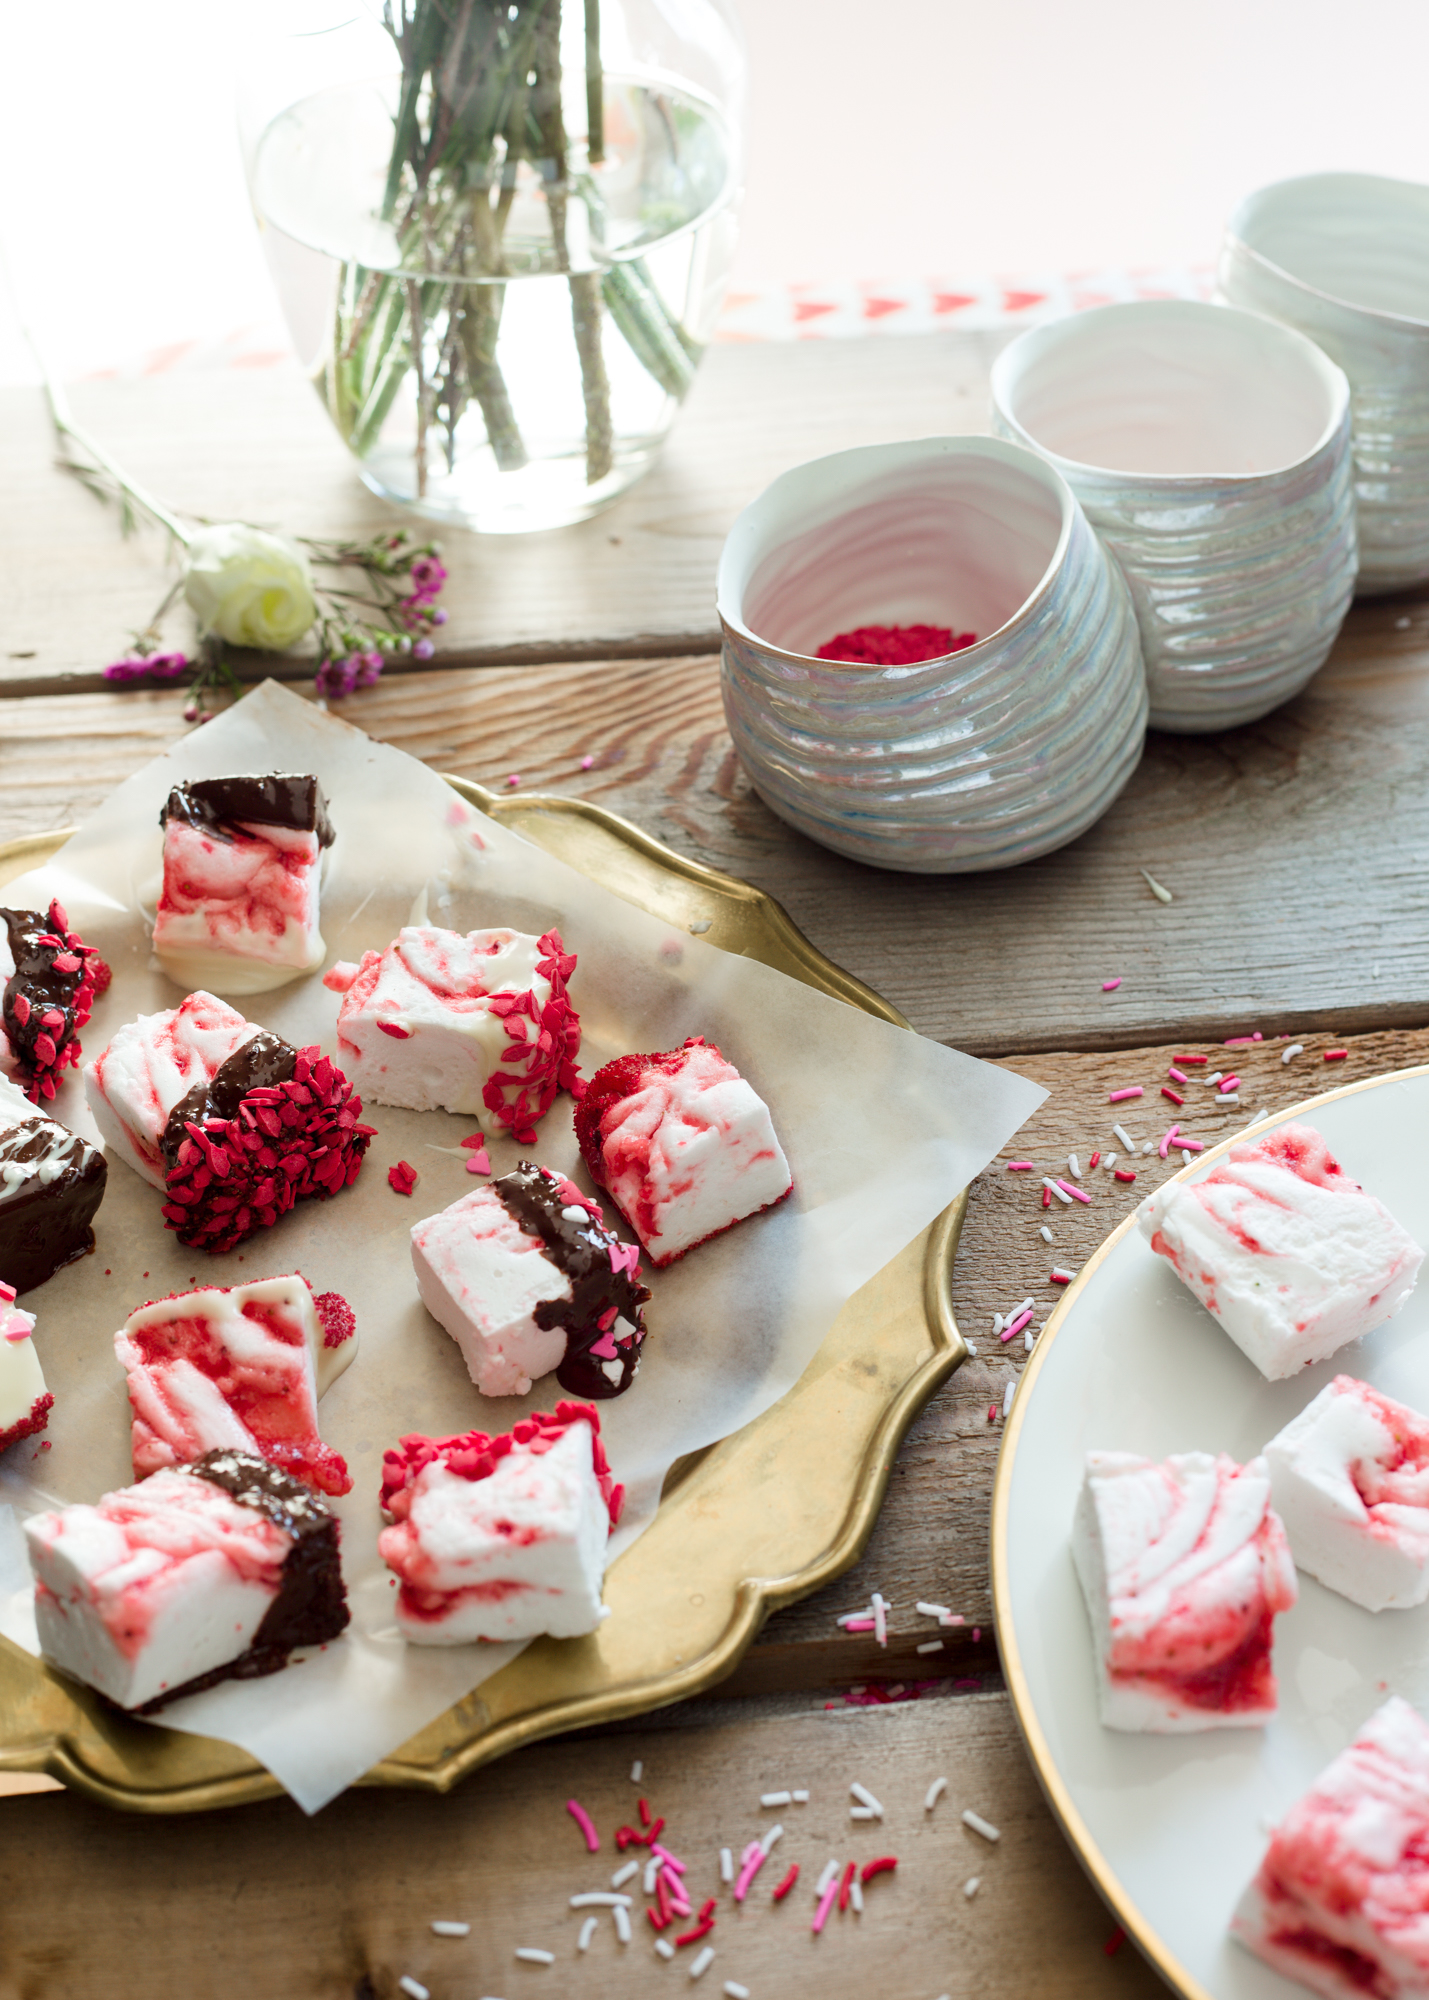 The LovingKind_Luv Cooks Strawberry Swirl Marshmallows